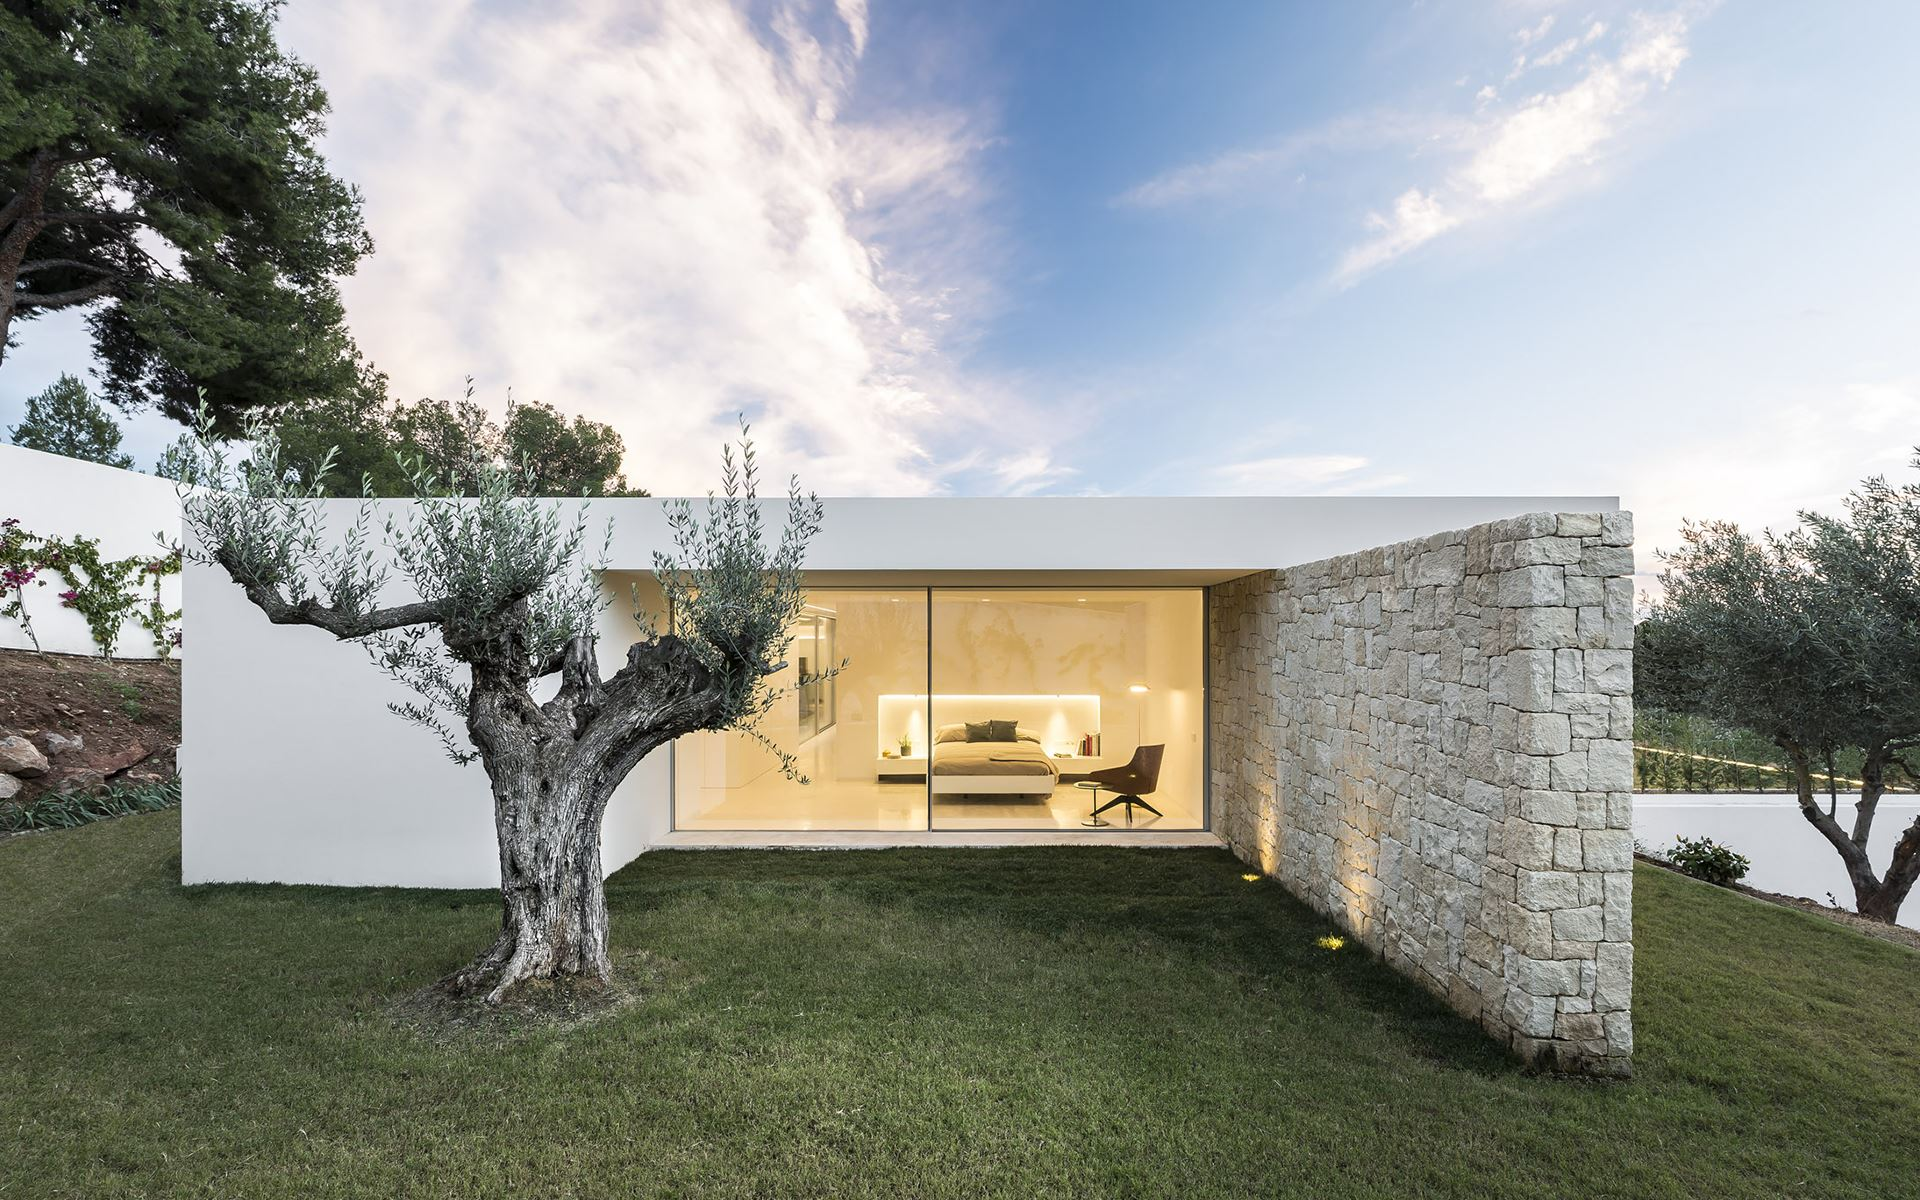 House design in Valencia - Gallardo Llopis Architecture